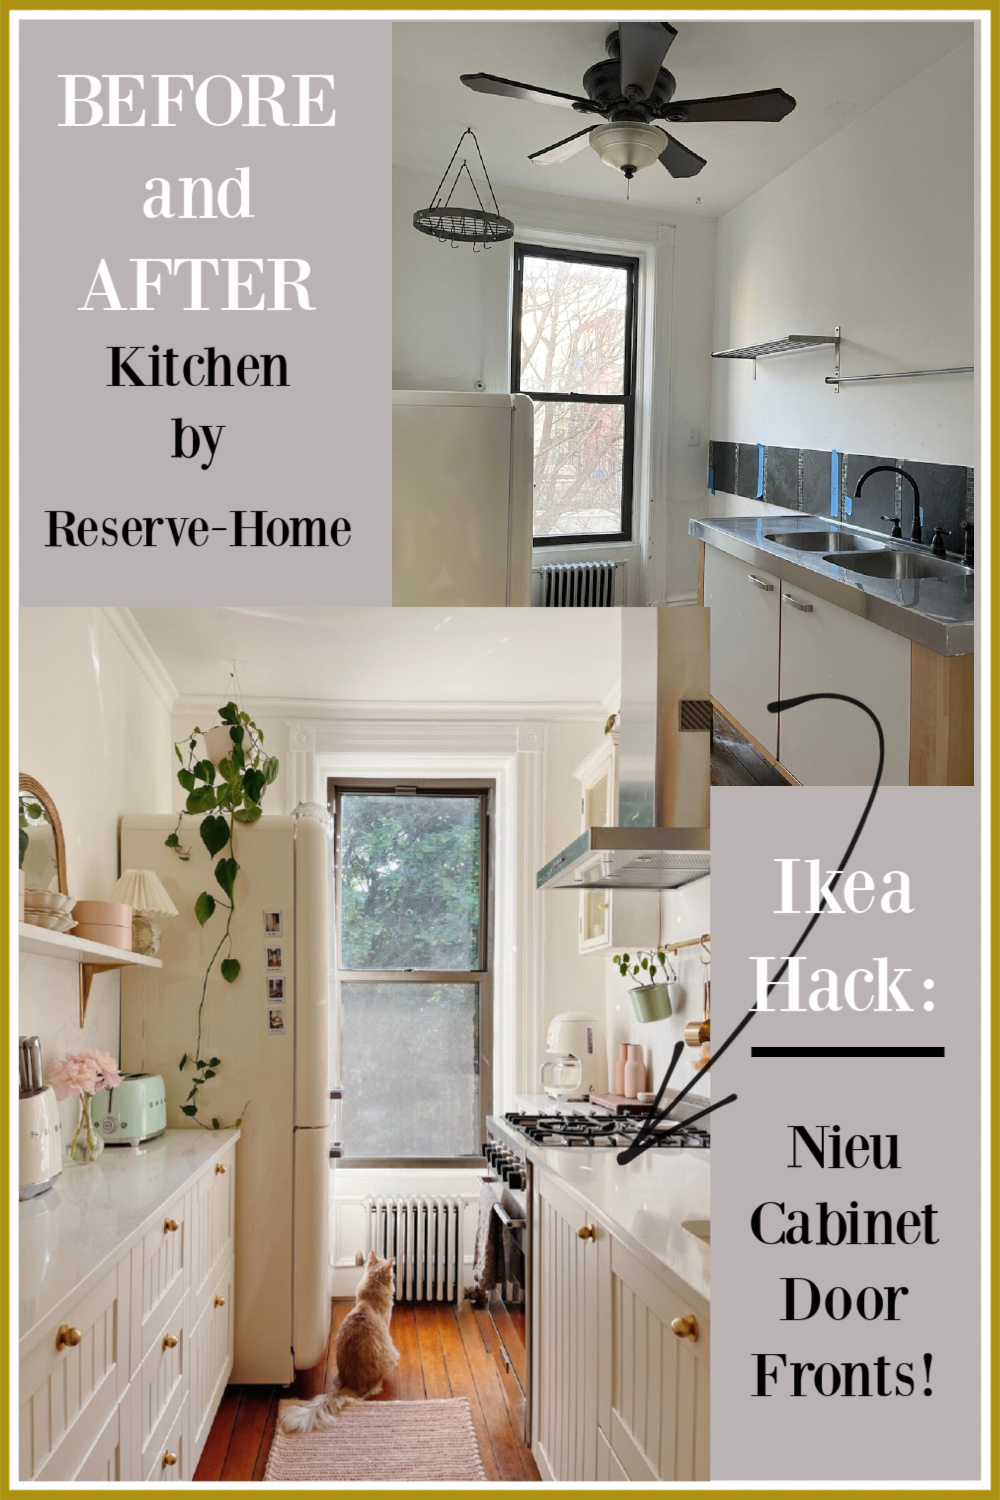 Ikea hack: cabinet door fronts from NIEU for a customized cottage look in a Brooklyn Brownstone kitchen by ReserveHome. #ikeahack #kitchendesign #kitchencabinets #cabinetrefacing